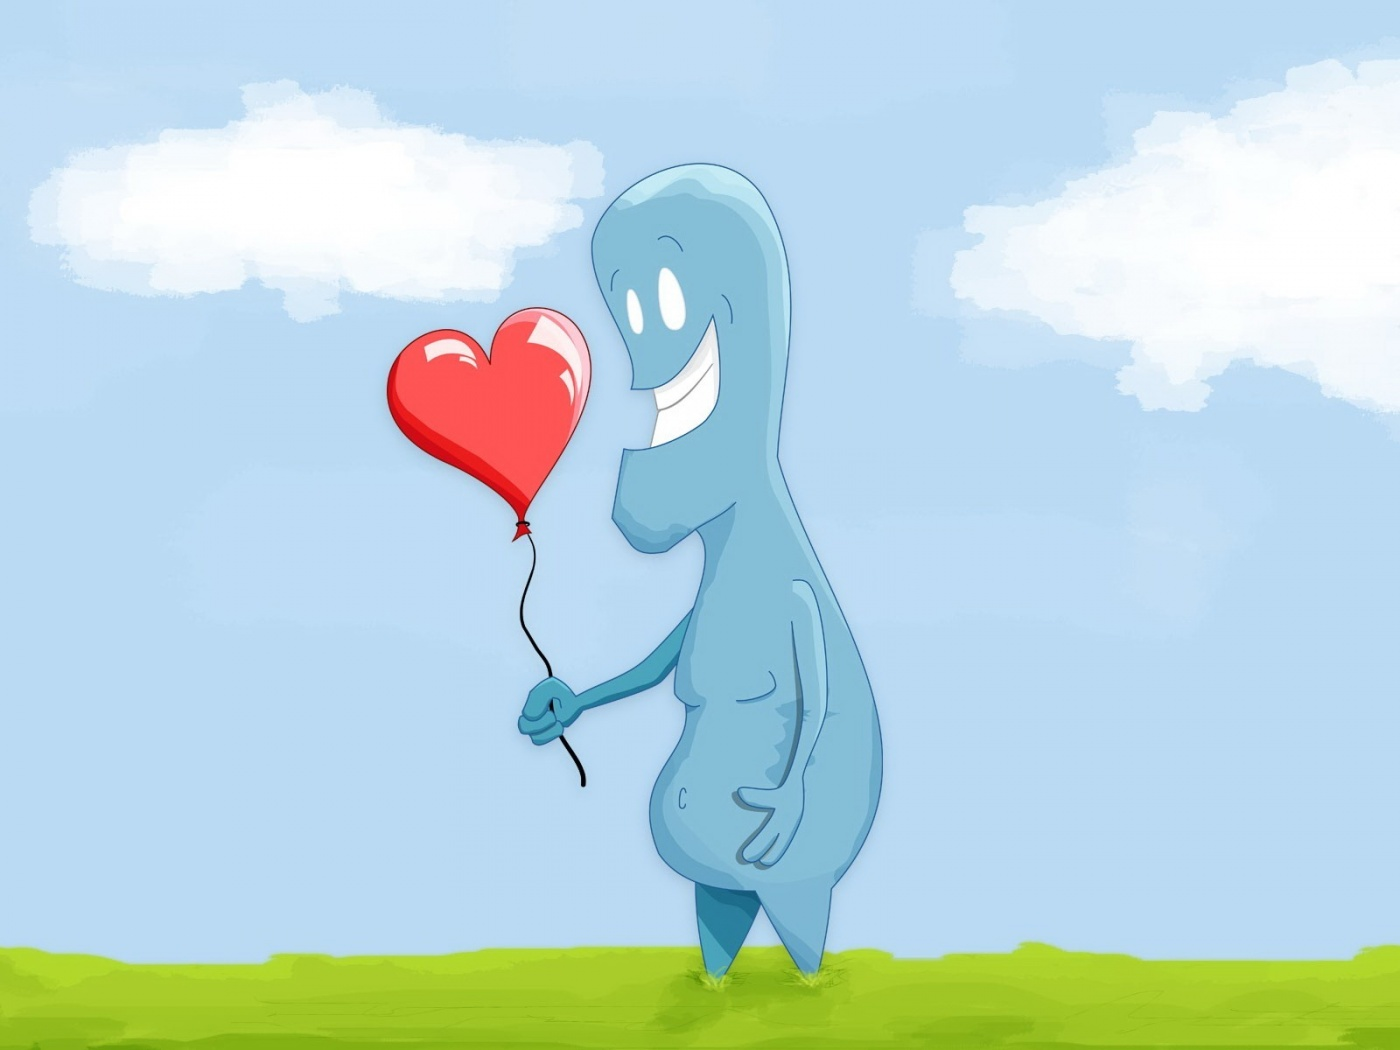 Love Balloon With cartoon Wallpaper : Love Balloon With cartoon Wallpapers - 1400x1050 - 152379